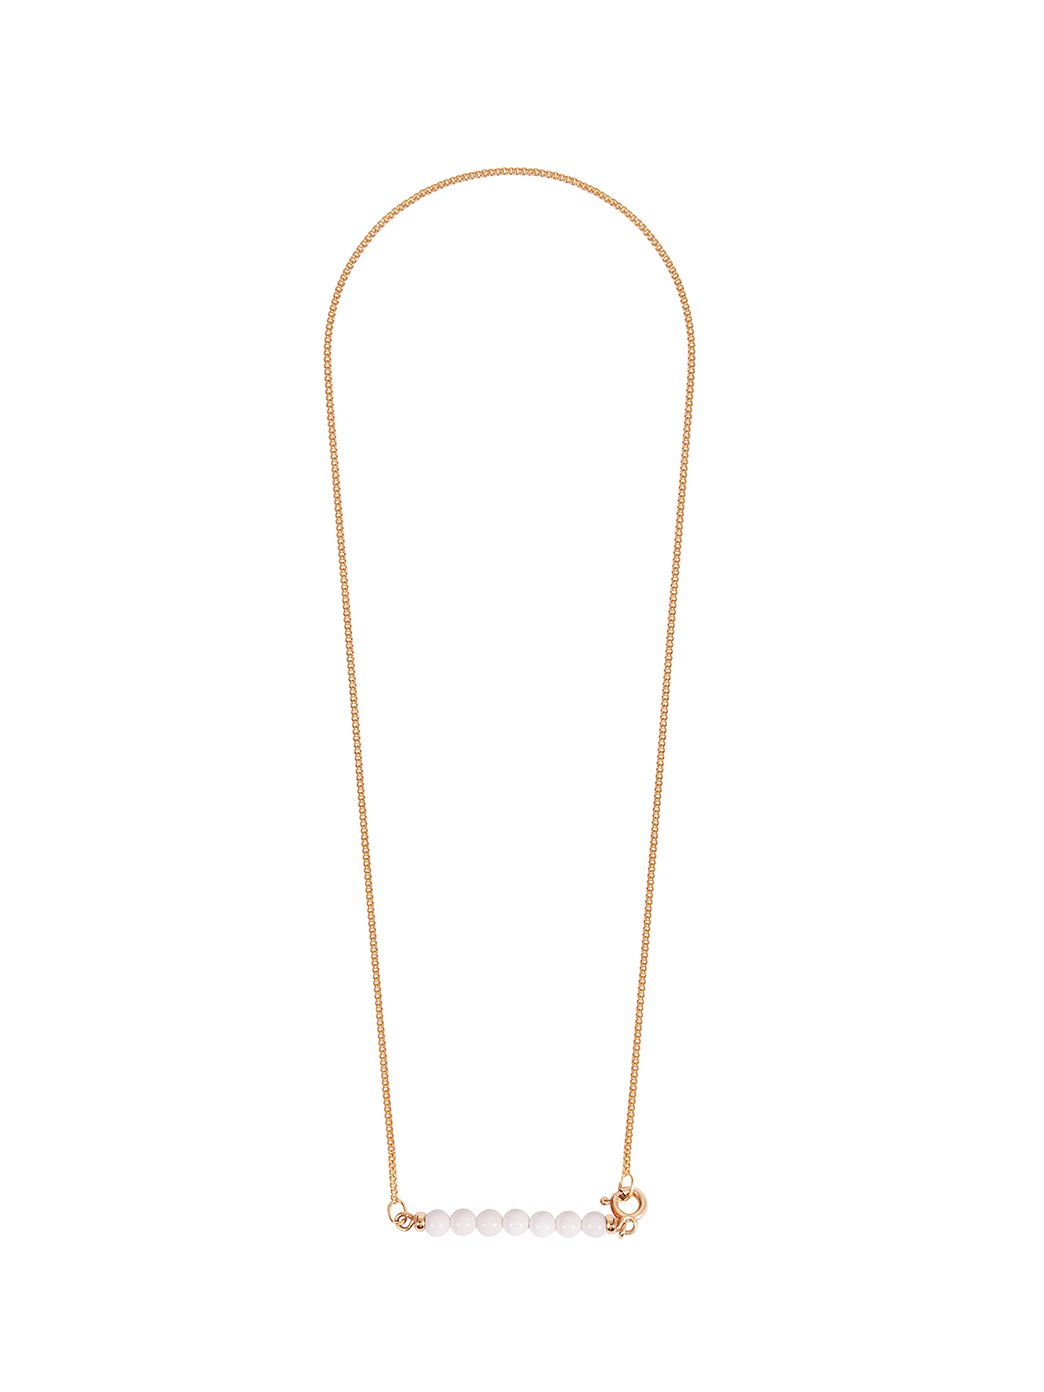 Fiorina Jewellery Gold Friendship Necklace White